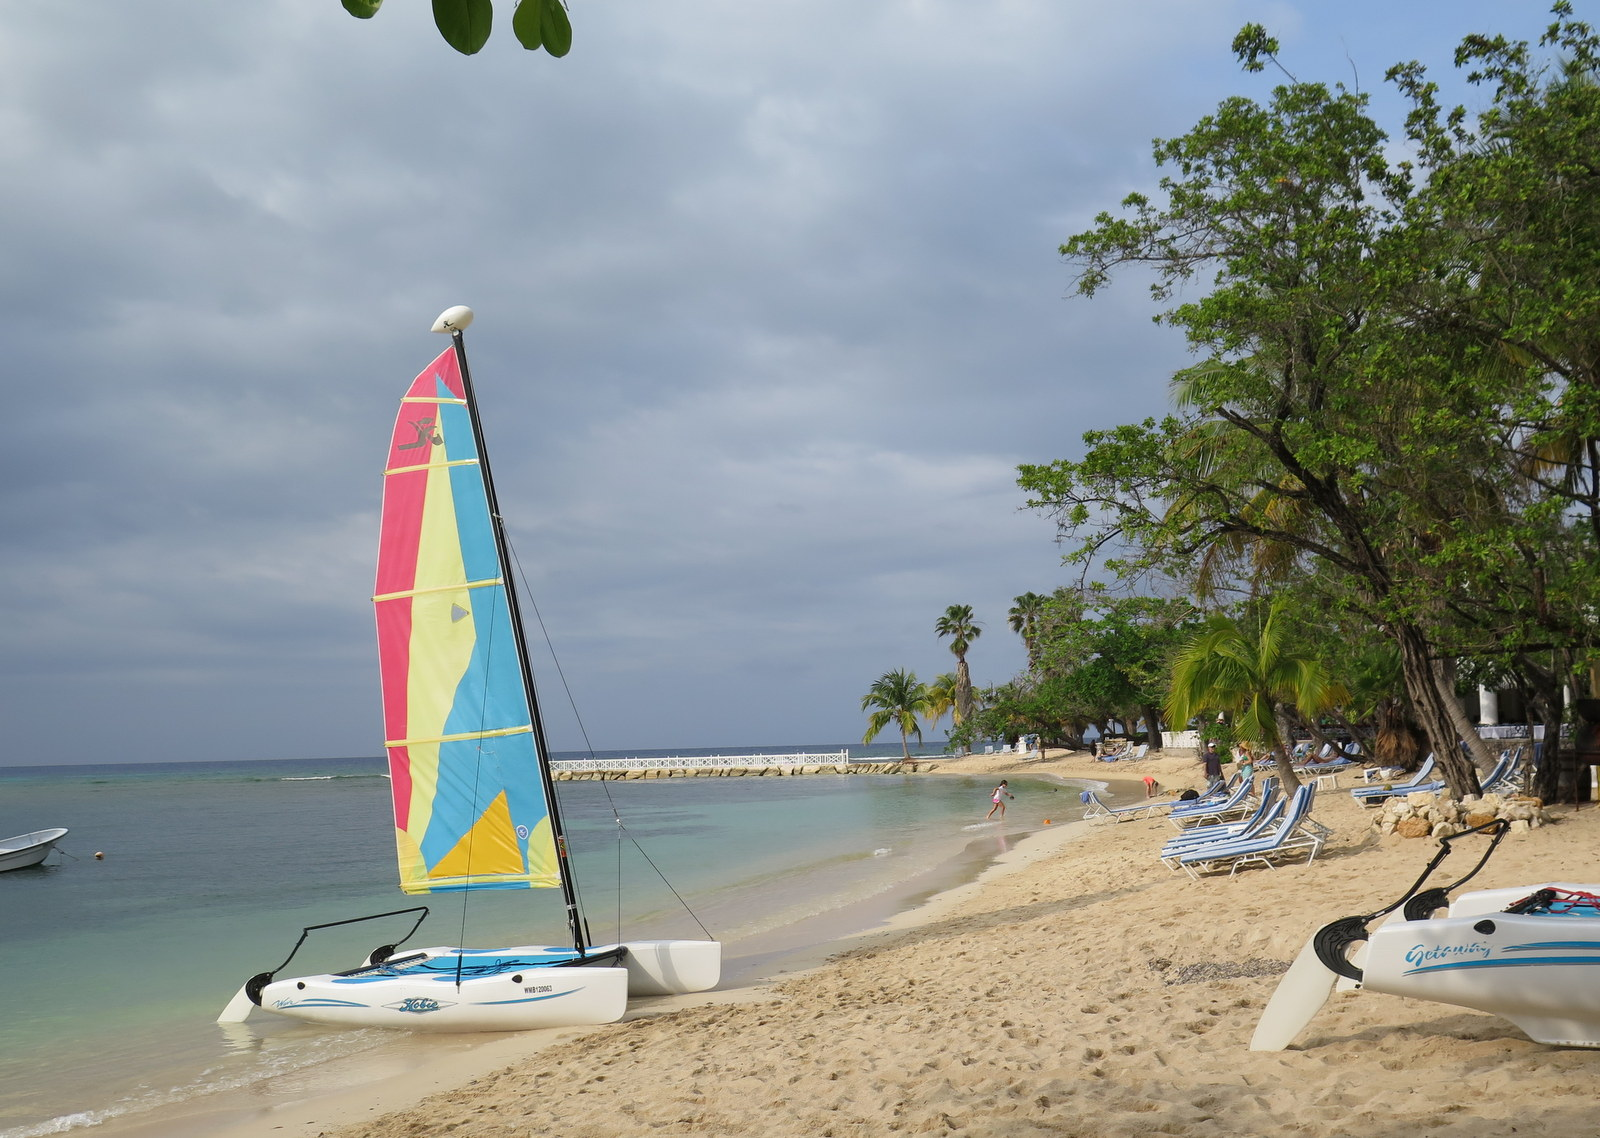 Jamaica is a fabulous spot to use your Aeroplan points for a winter vacation. - JIM BYERS PHOTO